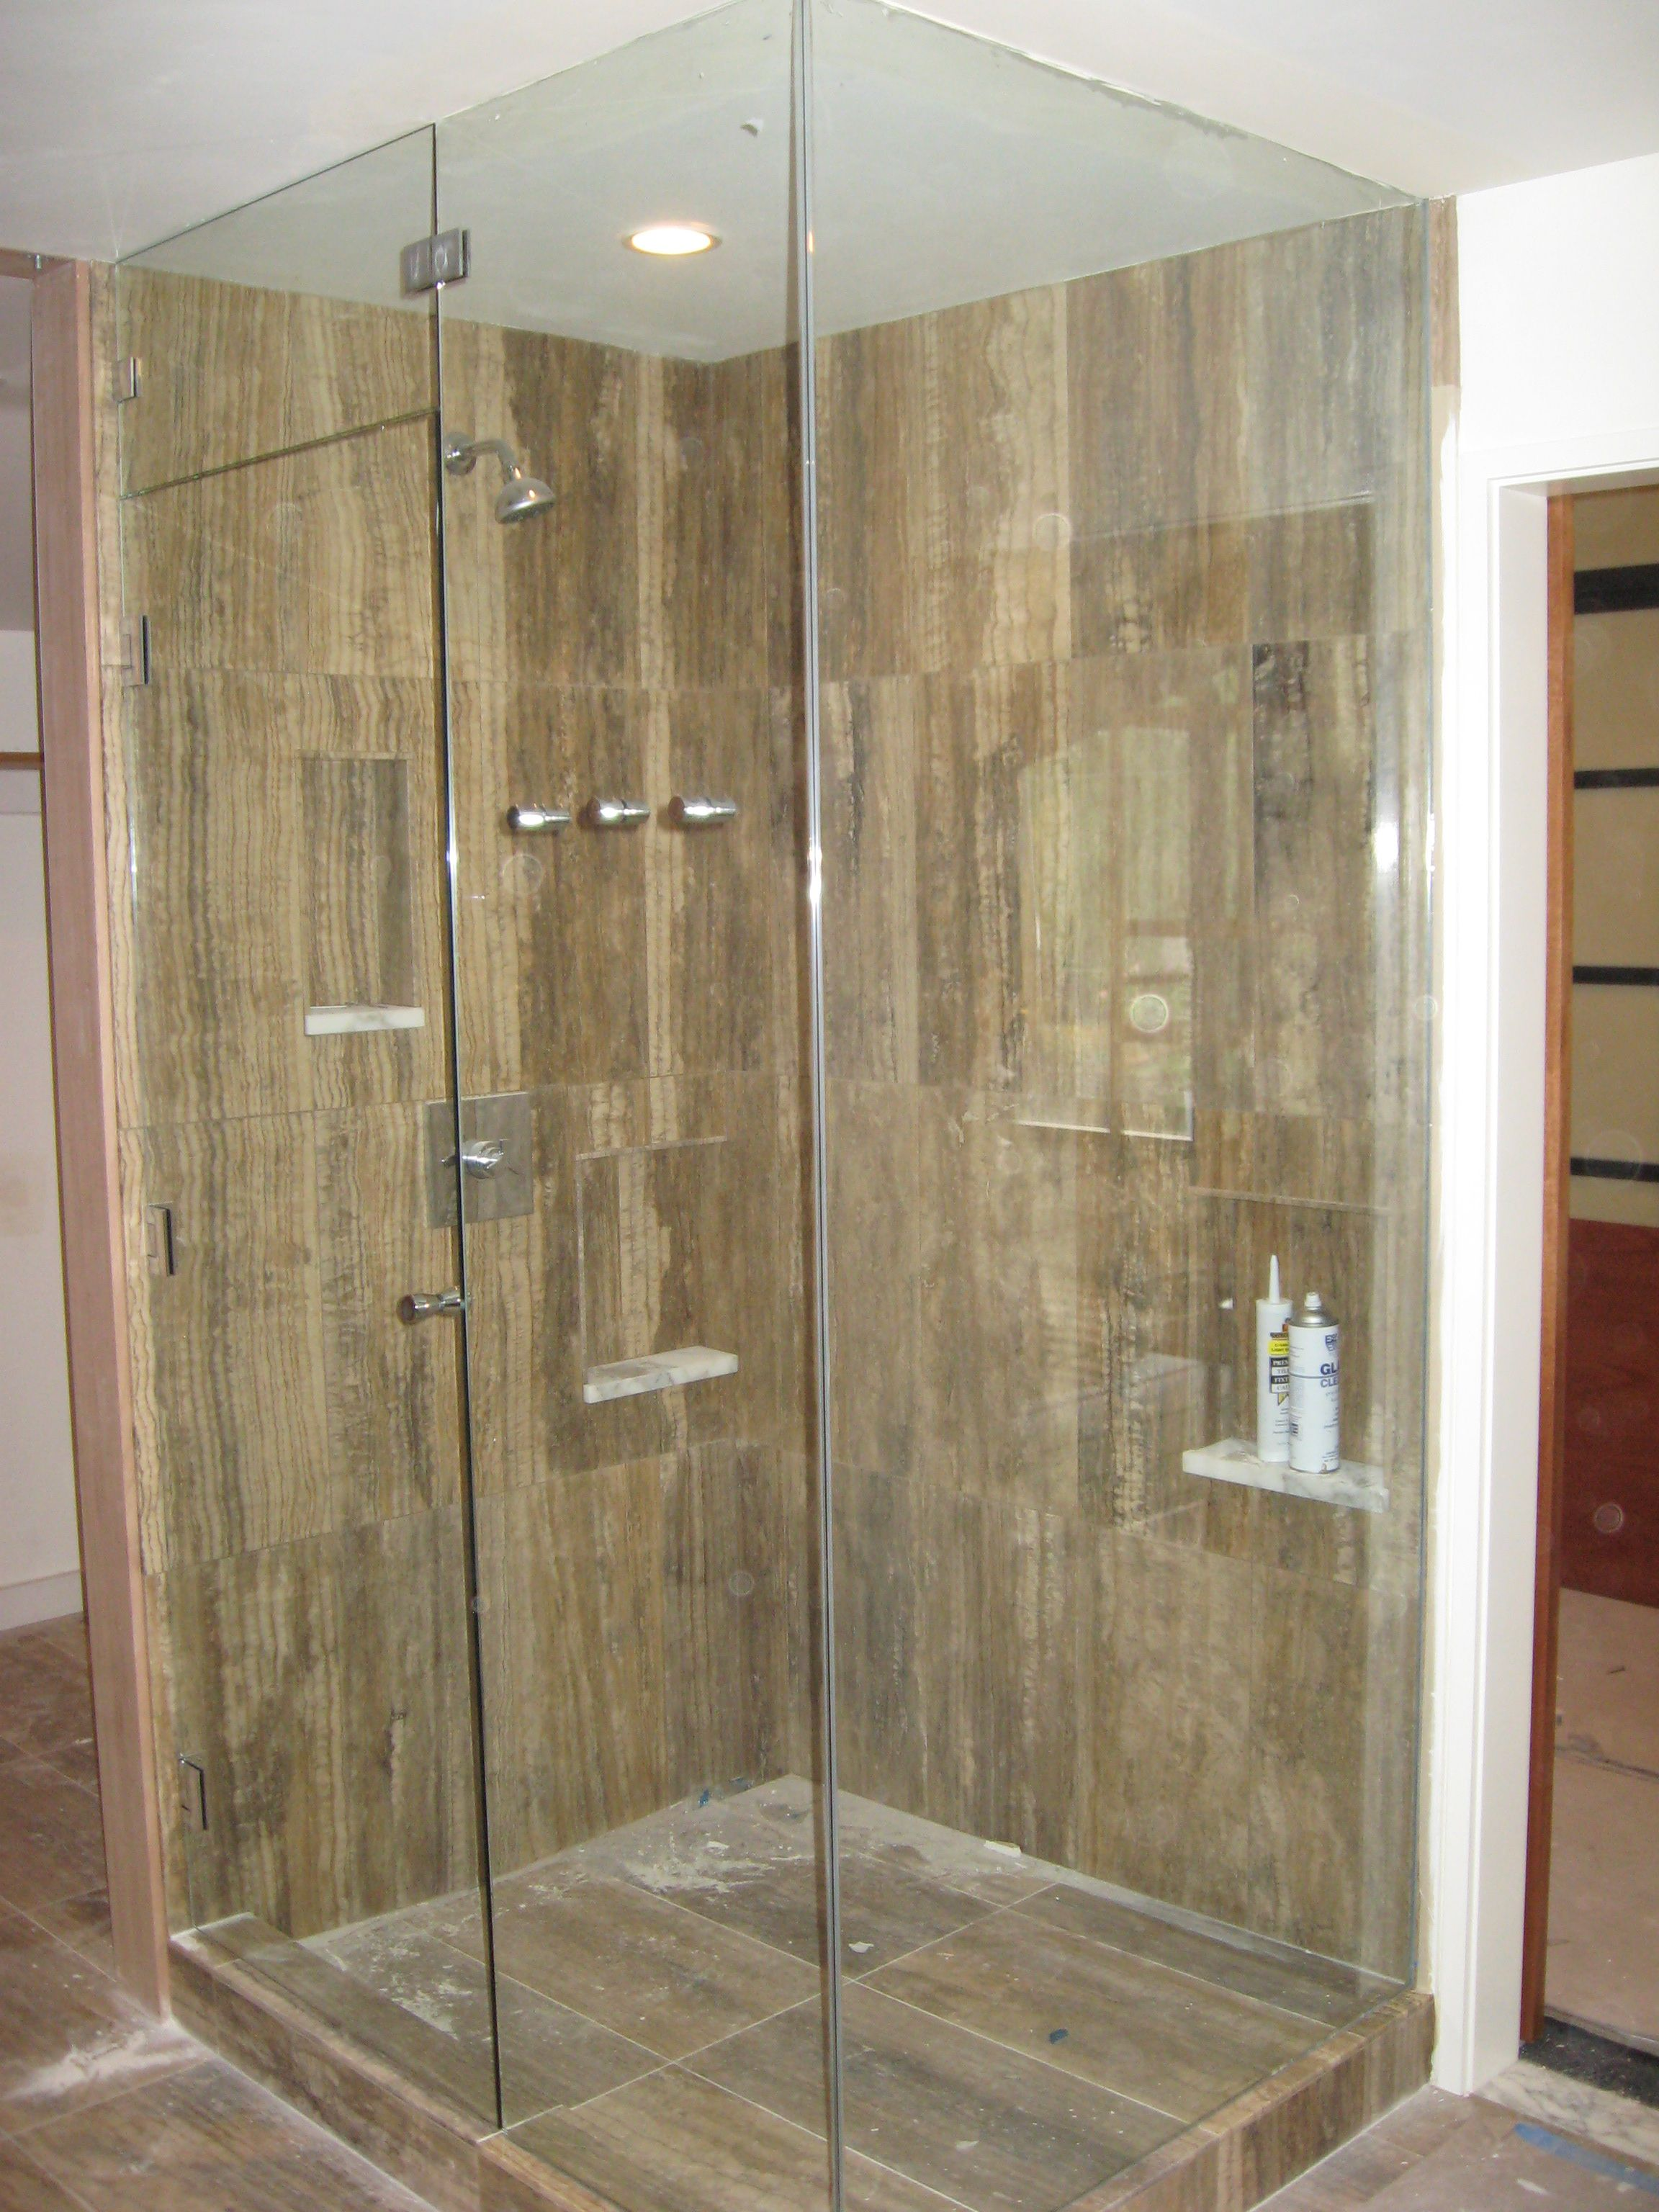 Pictures Of Showers With Glass Doors Click On The Image For A Larger View And Descriptio Bathroom Shower Panels Shower Doors Frameless Shower Doors